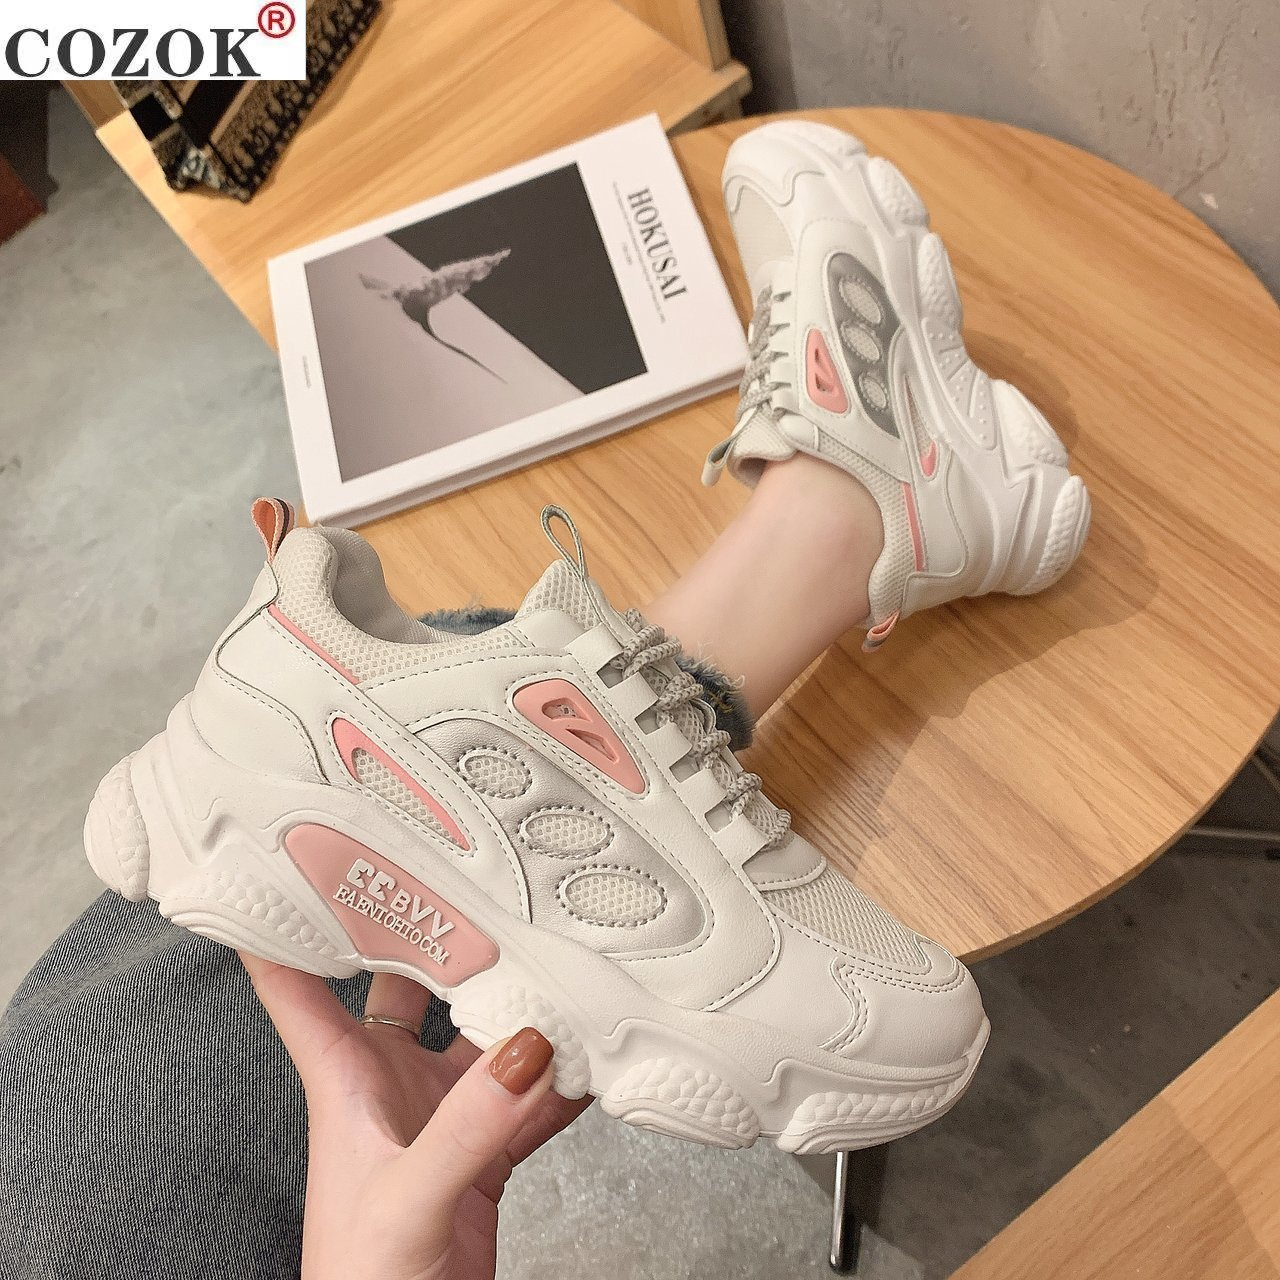 2021 Spring New Fashion Comfortable and Breathable Women's Shoes Cross Strap Platform Vulcanized Women Sneakers Light Casual